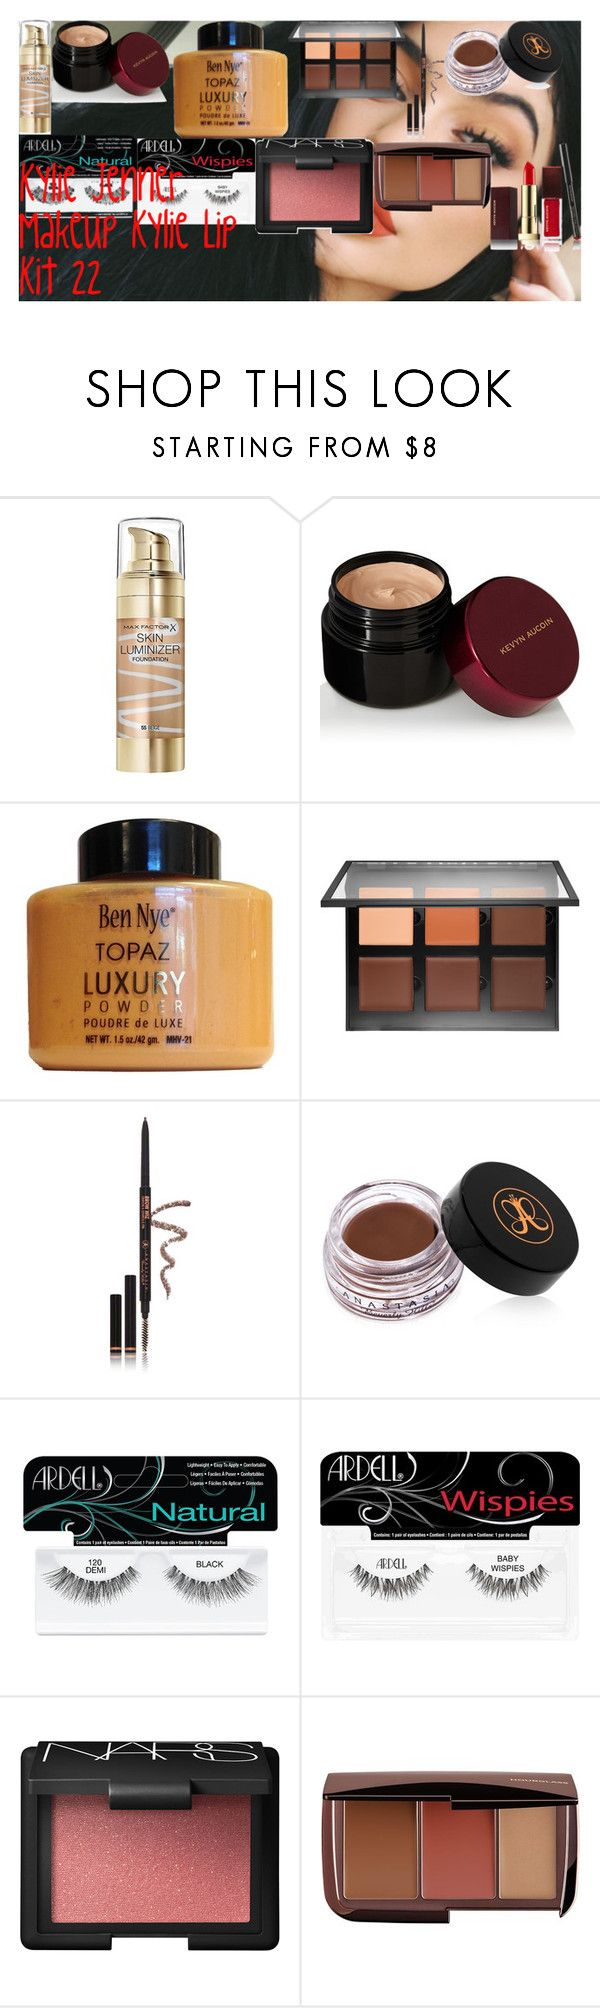 """Kylie Jenner Makeup ♡ Kylie Lip Kit 22 ♡"" by oroartye-1 on Polyvore featuring beauty, Max Factor, Kevyn Aucoin, Anastasia Beverly Hills, Ardell, NARS Cosmetics and Hourglass Cosmetics"